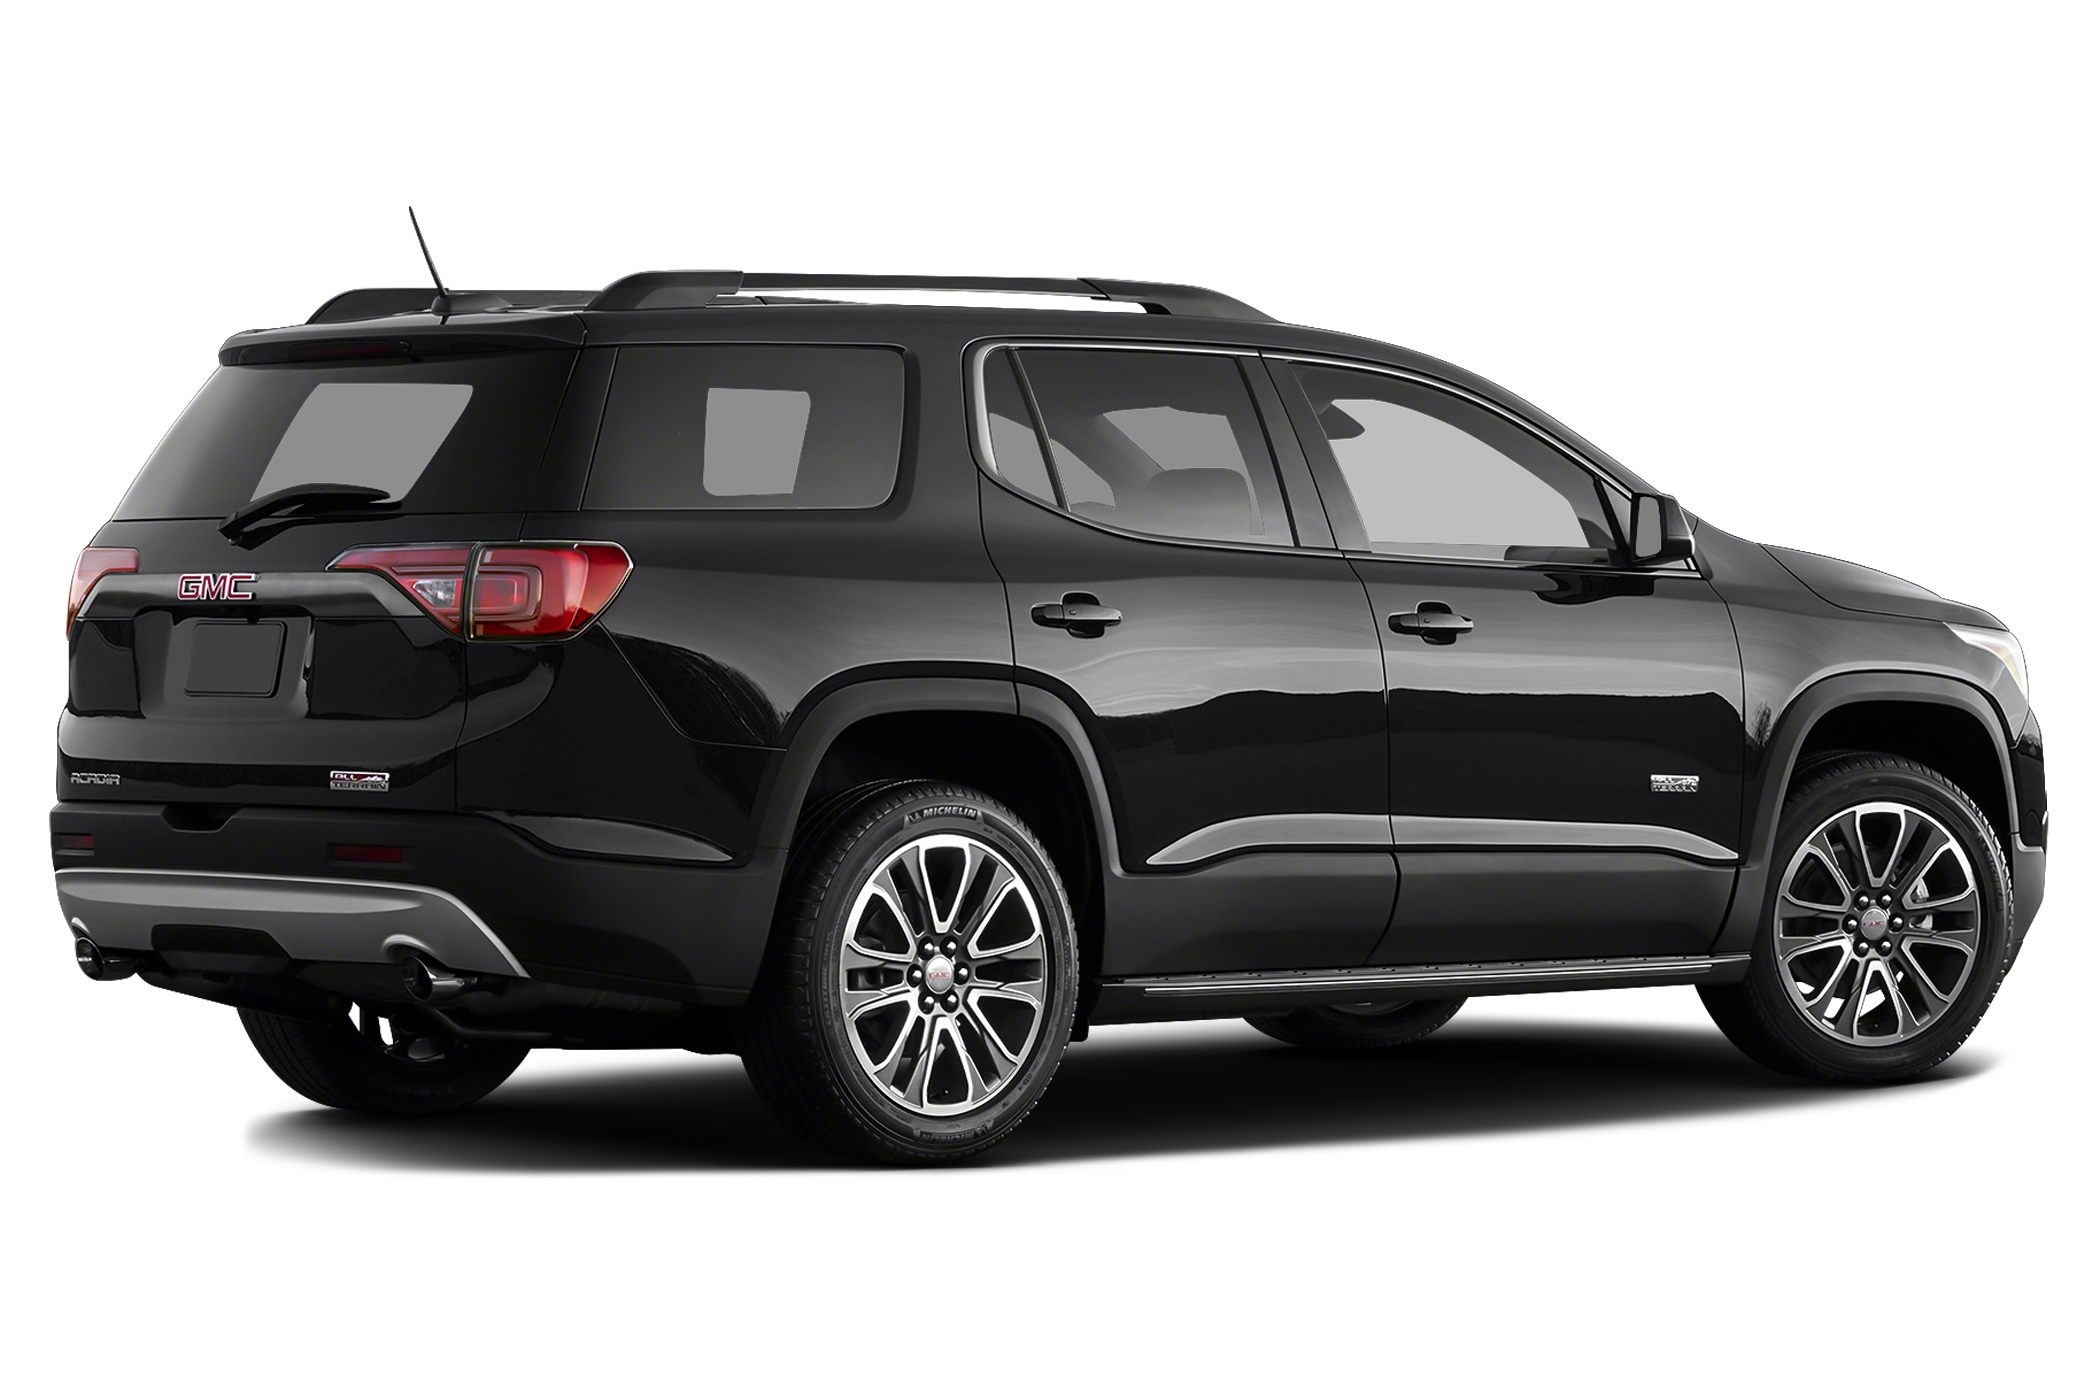 2017 GMC Acadia Specs Safety Rating & MPG CarsDirect